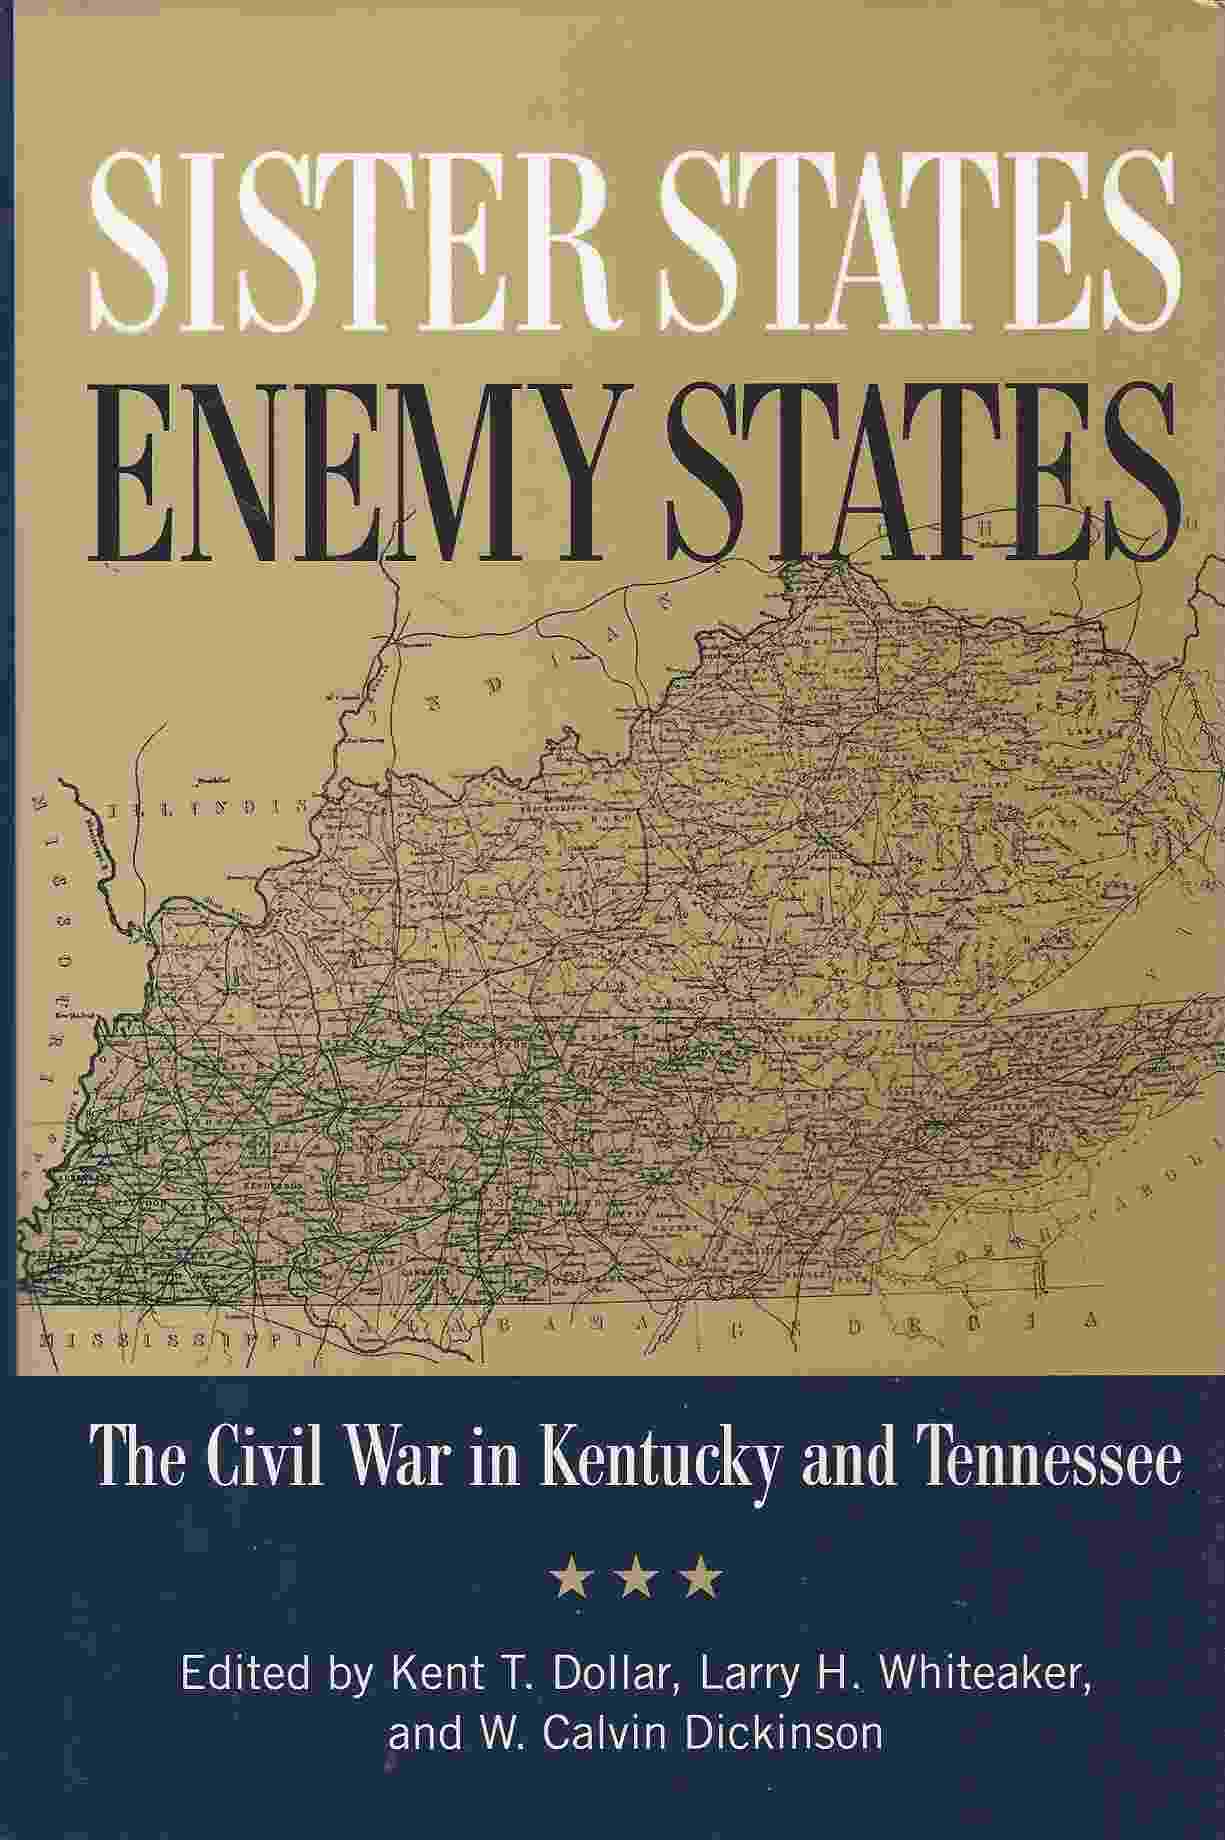 Image for SISTER STATES, ENEMY STATES  The Civil War in Kentucky and Tennessee